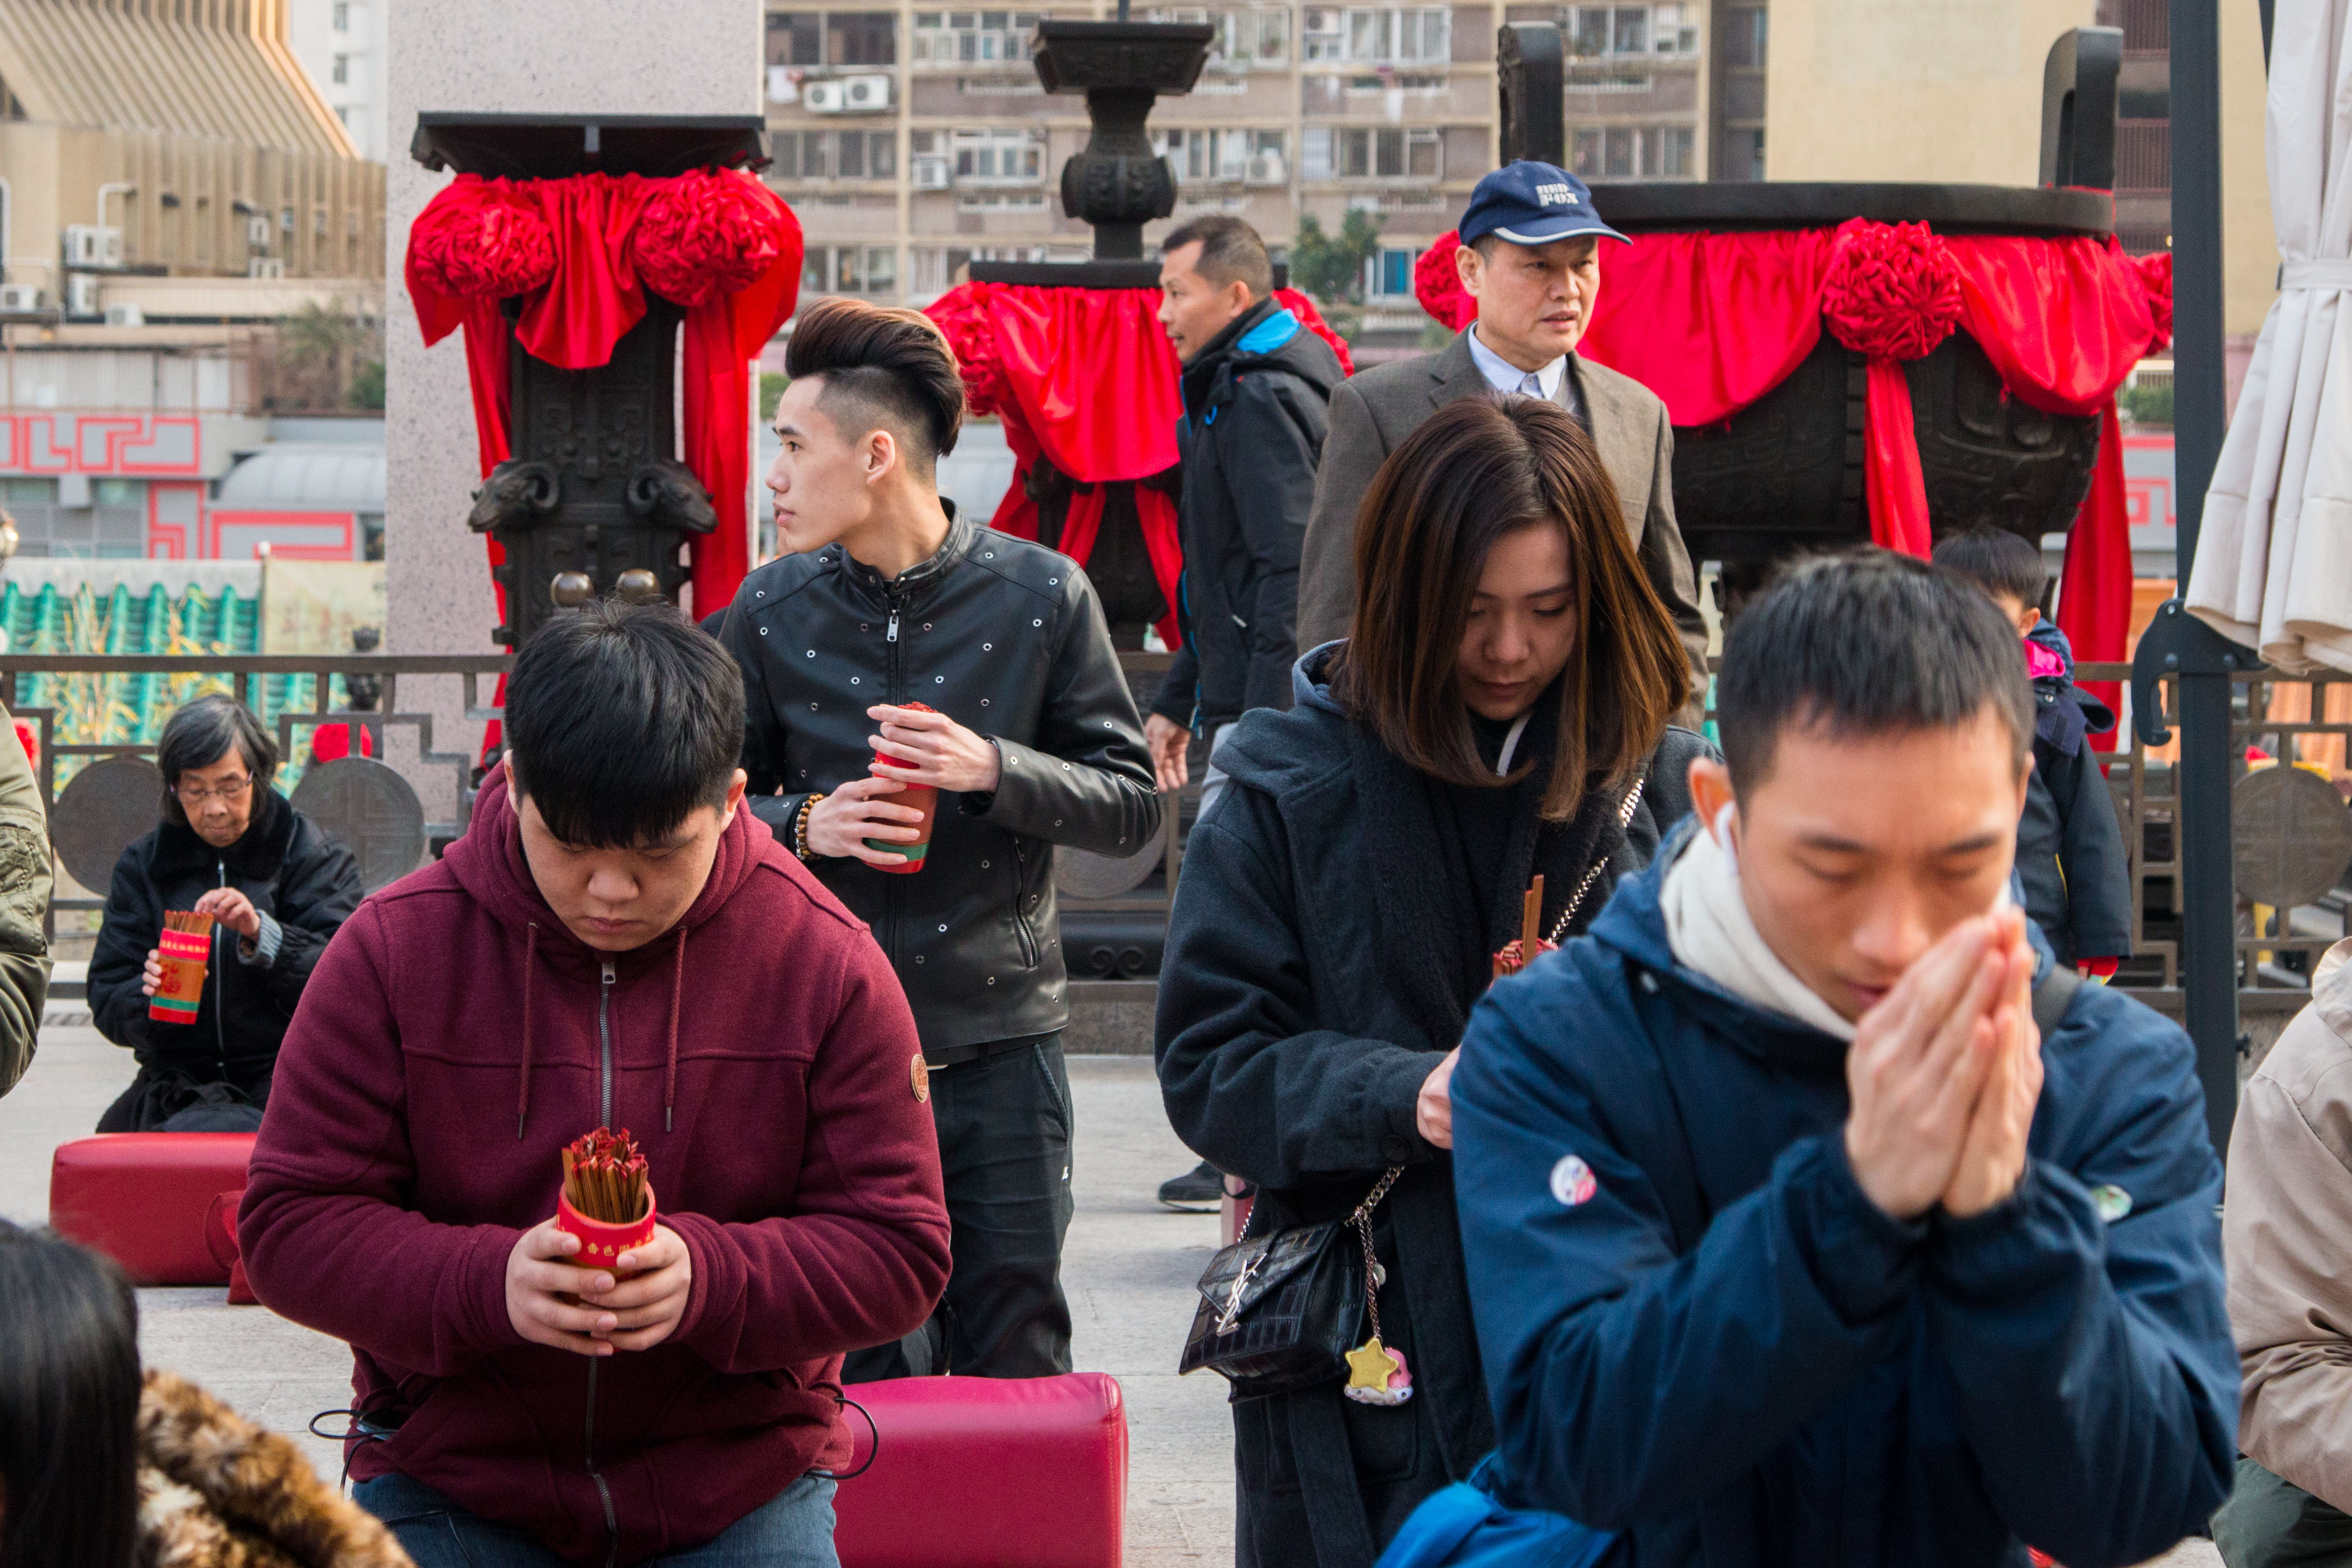 Worshippers with kau cim divination sticks at Wong Tai Sing temple in Hong Kong on Feb. 4, 2018.